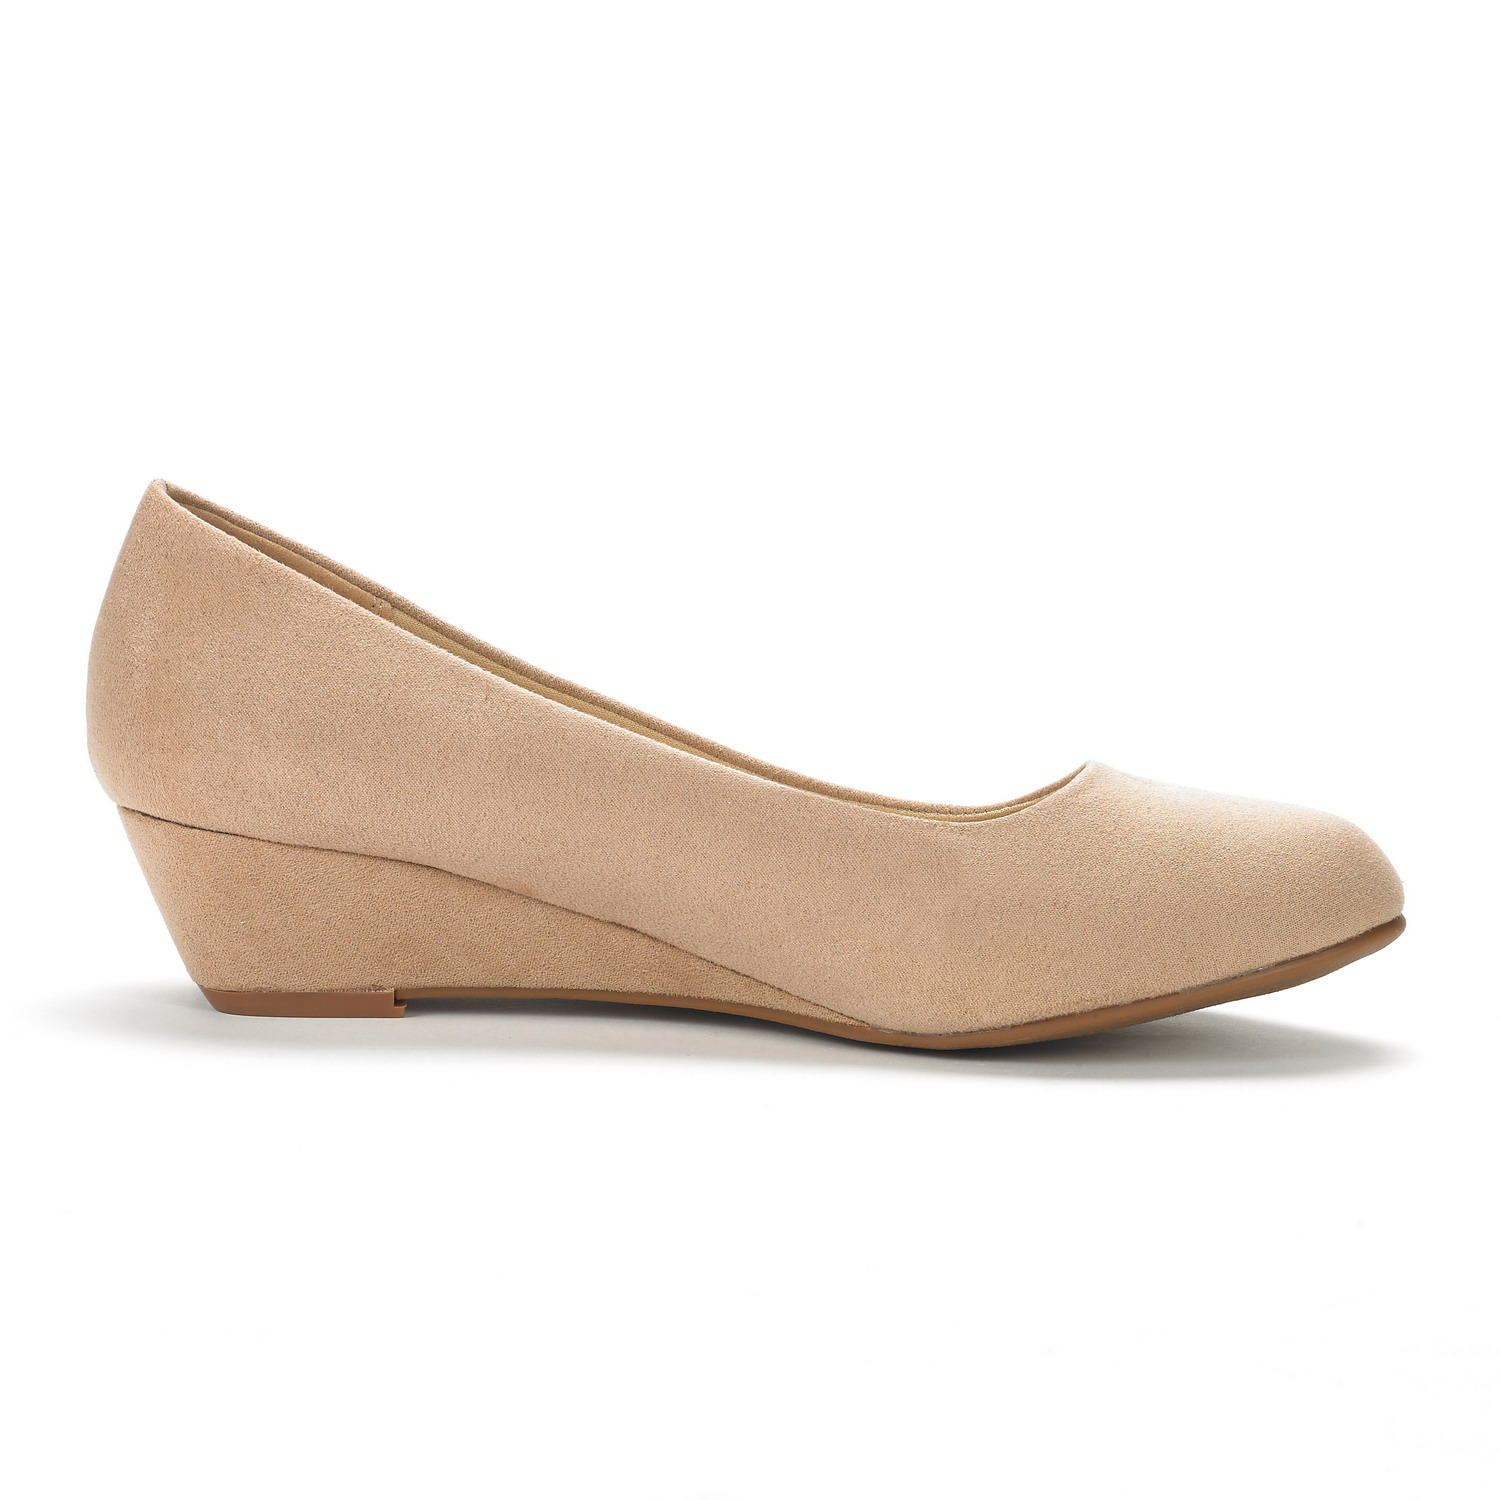 DREAM-PAIRS-Women-039-s-Mid-Wedge-Heel-Shoes-Slip-On-Comfort-Dress-Shoes-Suede-PU thumbnail 4